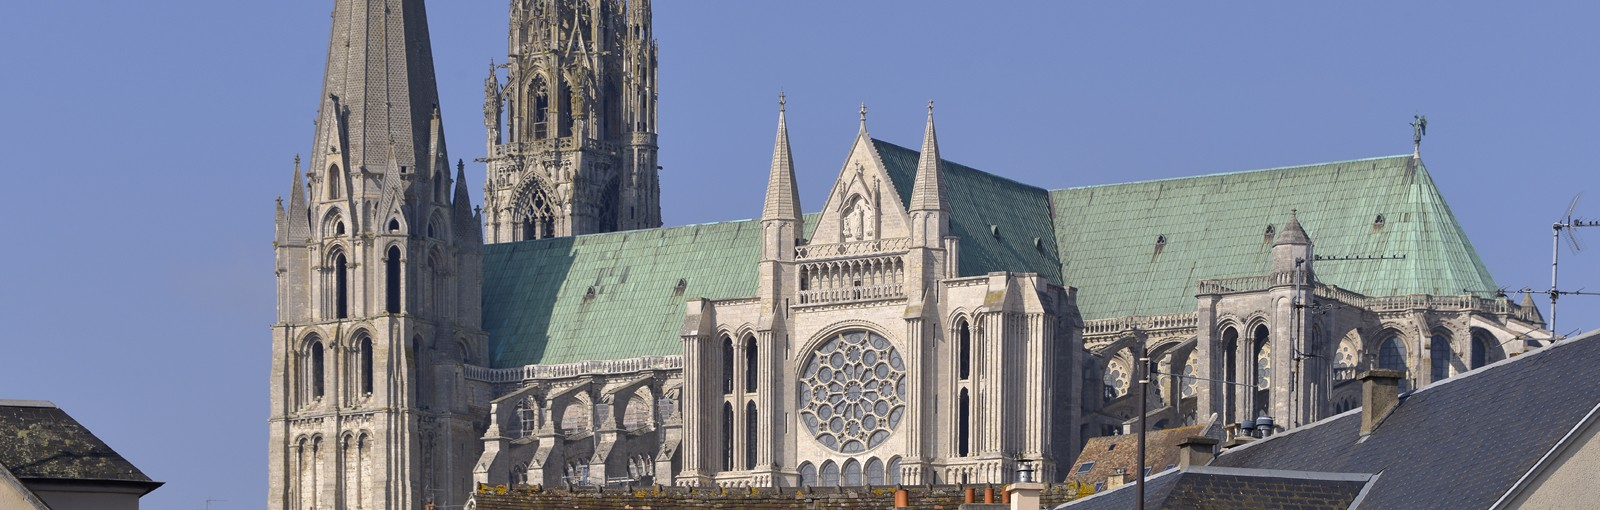 Tours Chartres - Half days - Day tours from Paris